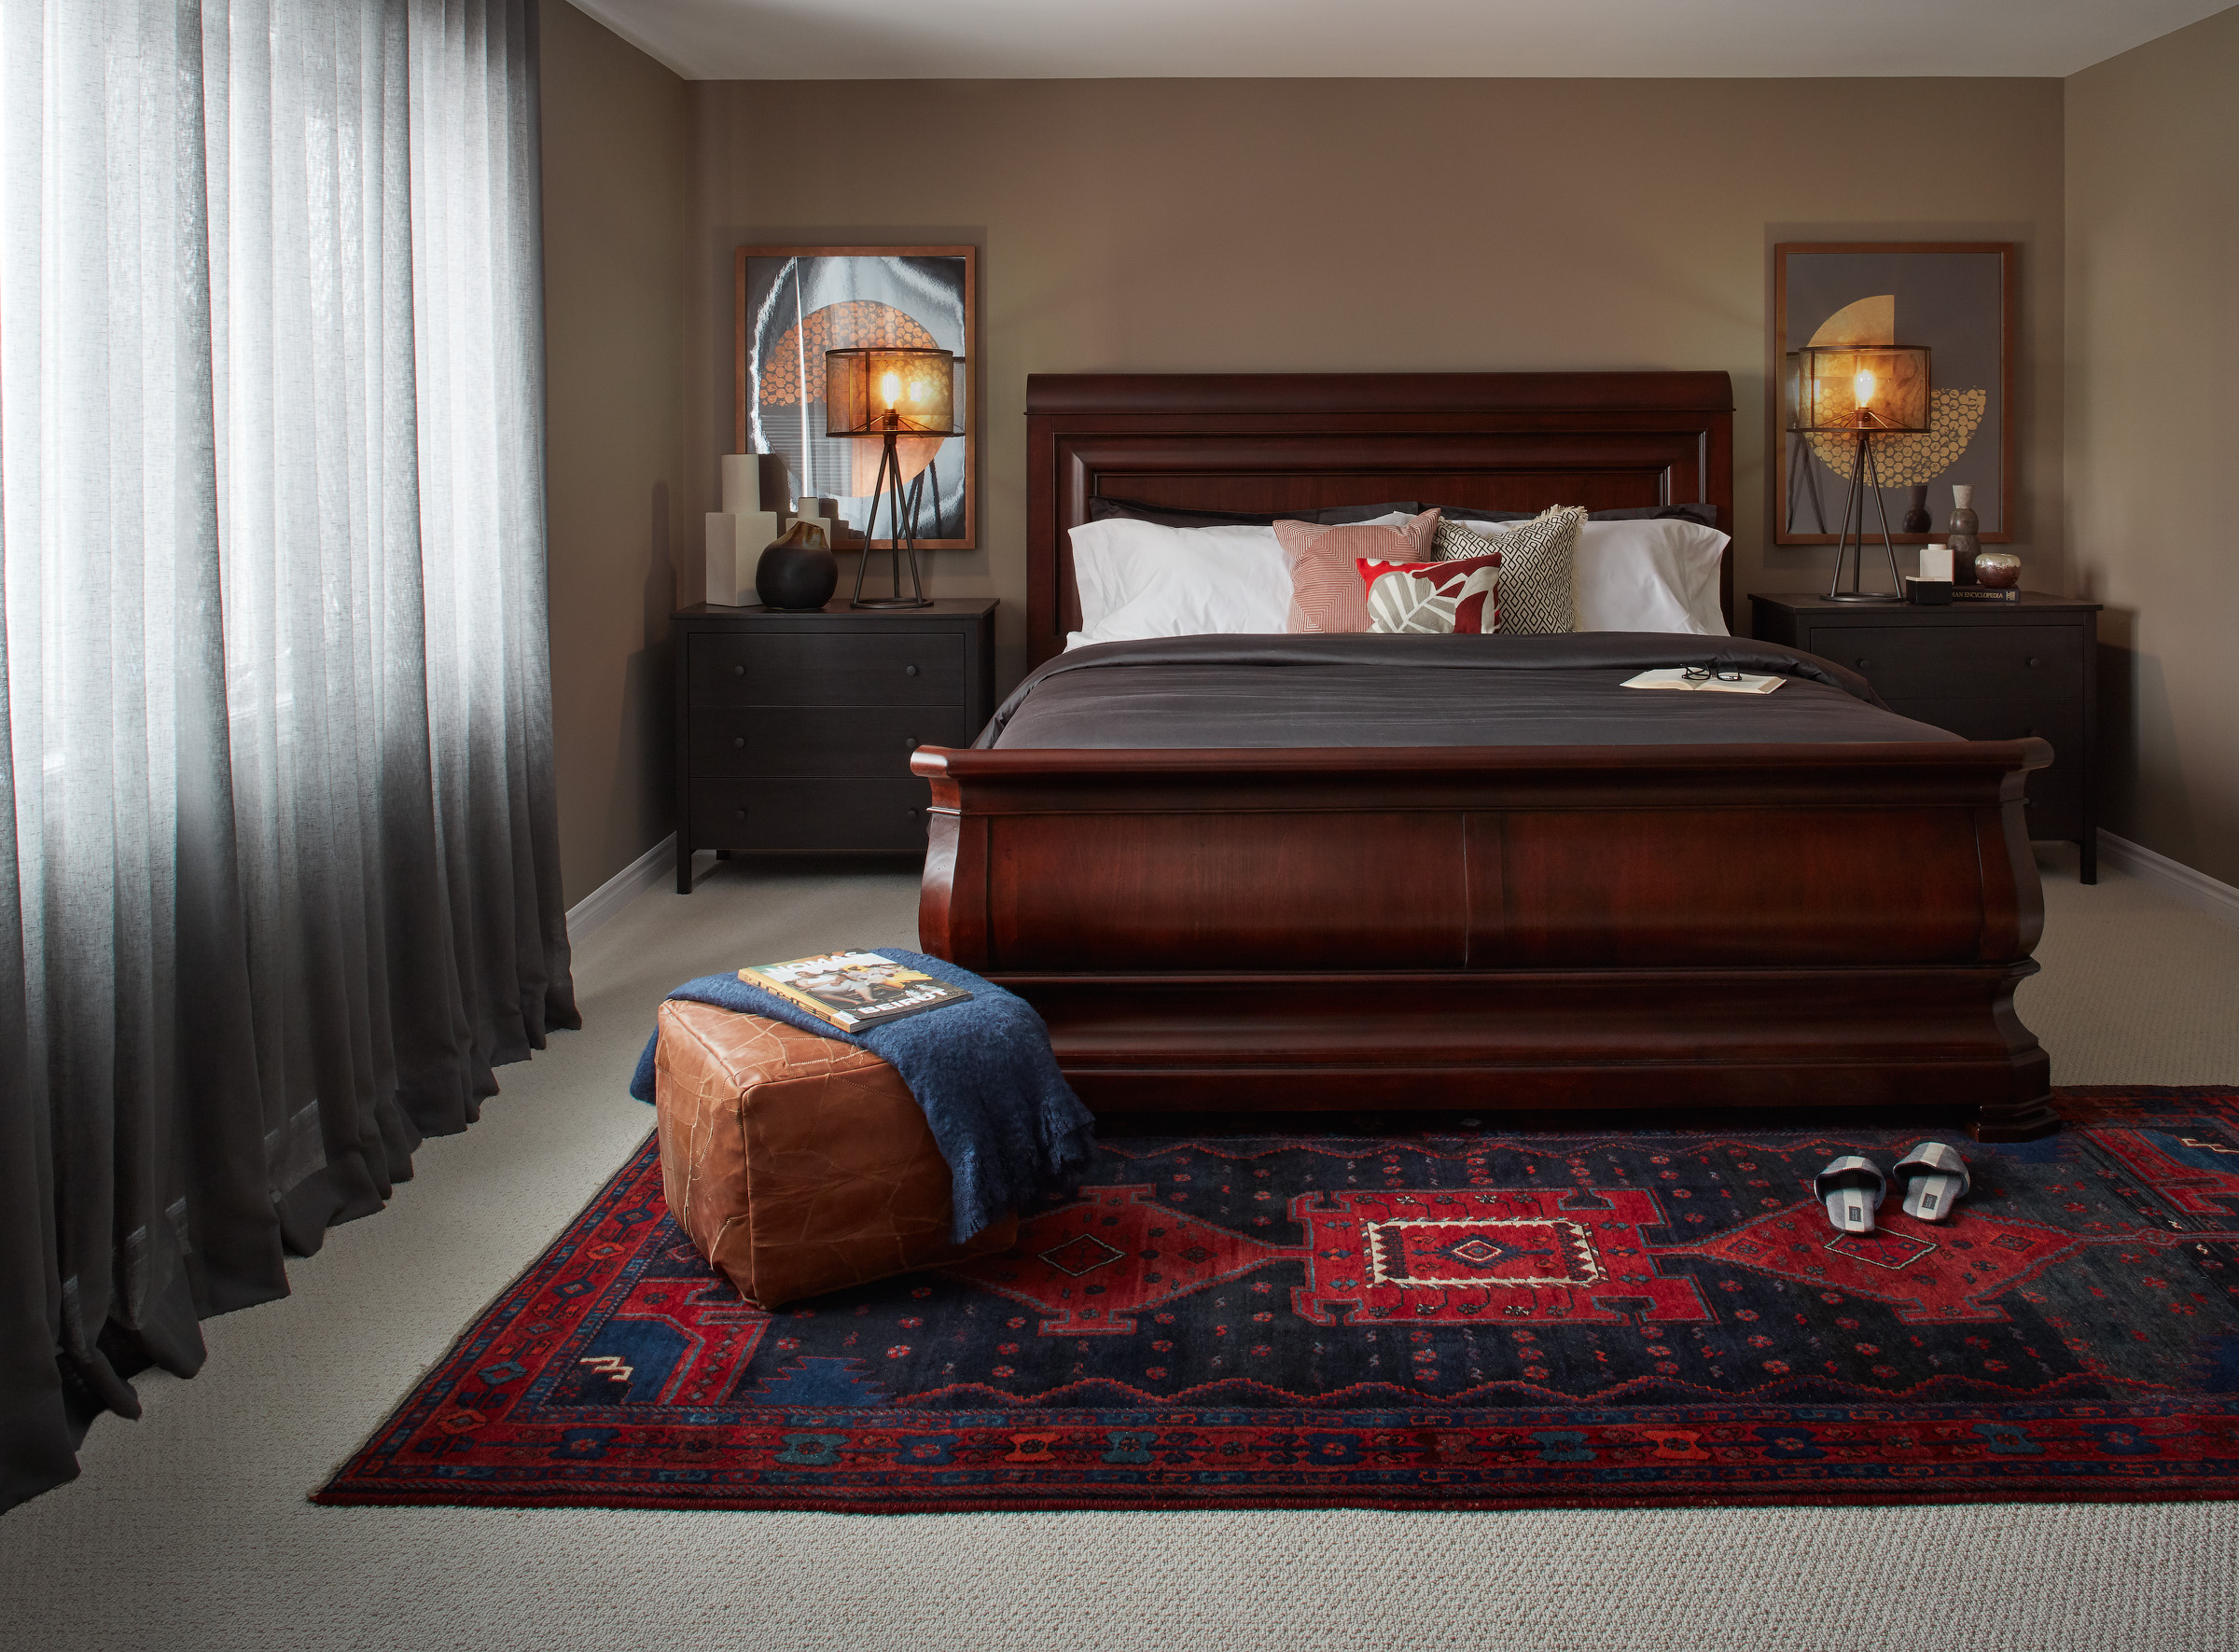 Industrial Ranch master bedroom with large mahogany bed and red patterned rug